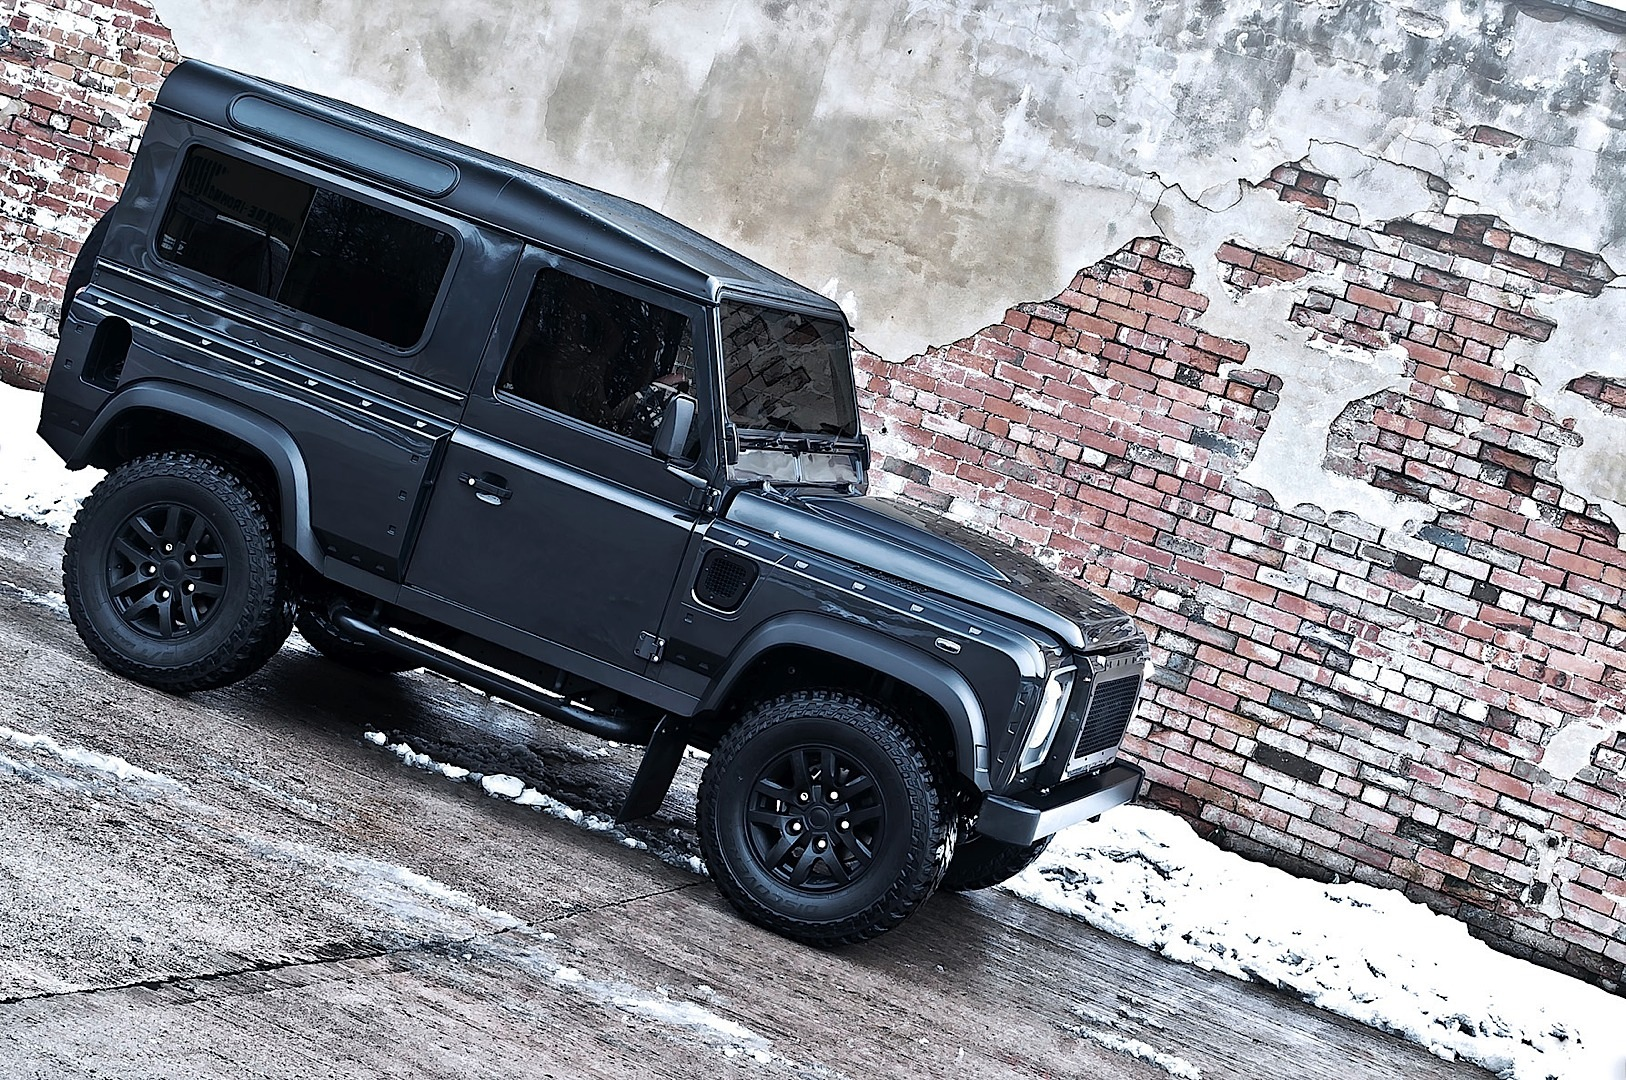 kahn land rover defender military edition with wide body kit autoevolution. Black Bedroom Furniture Sets. Home Design Ideas